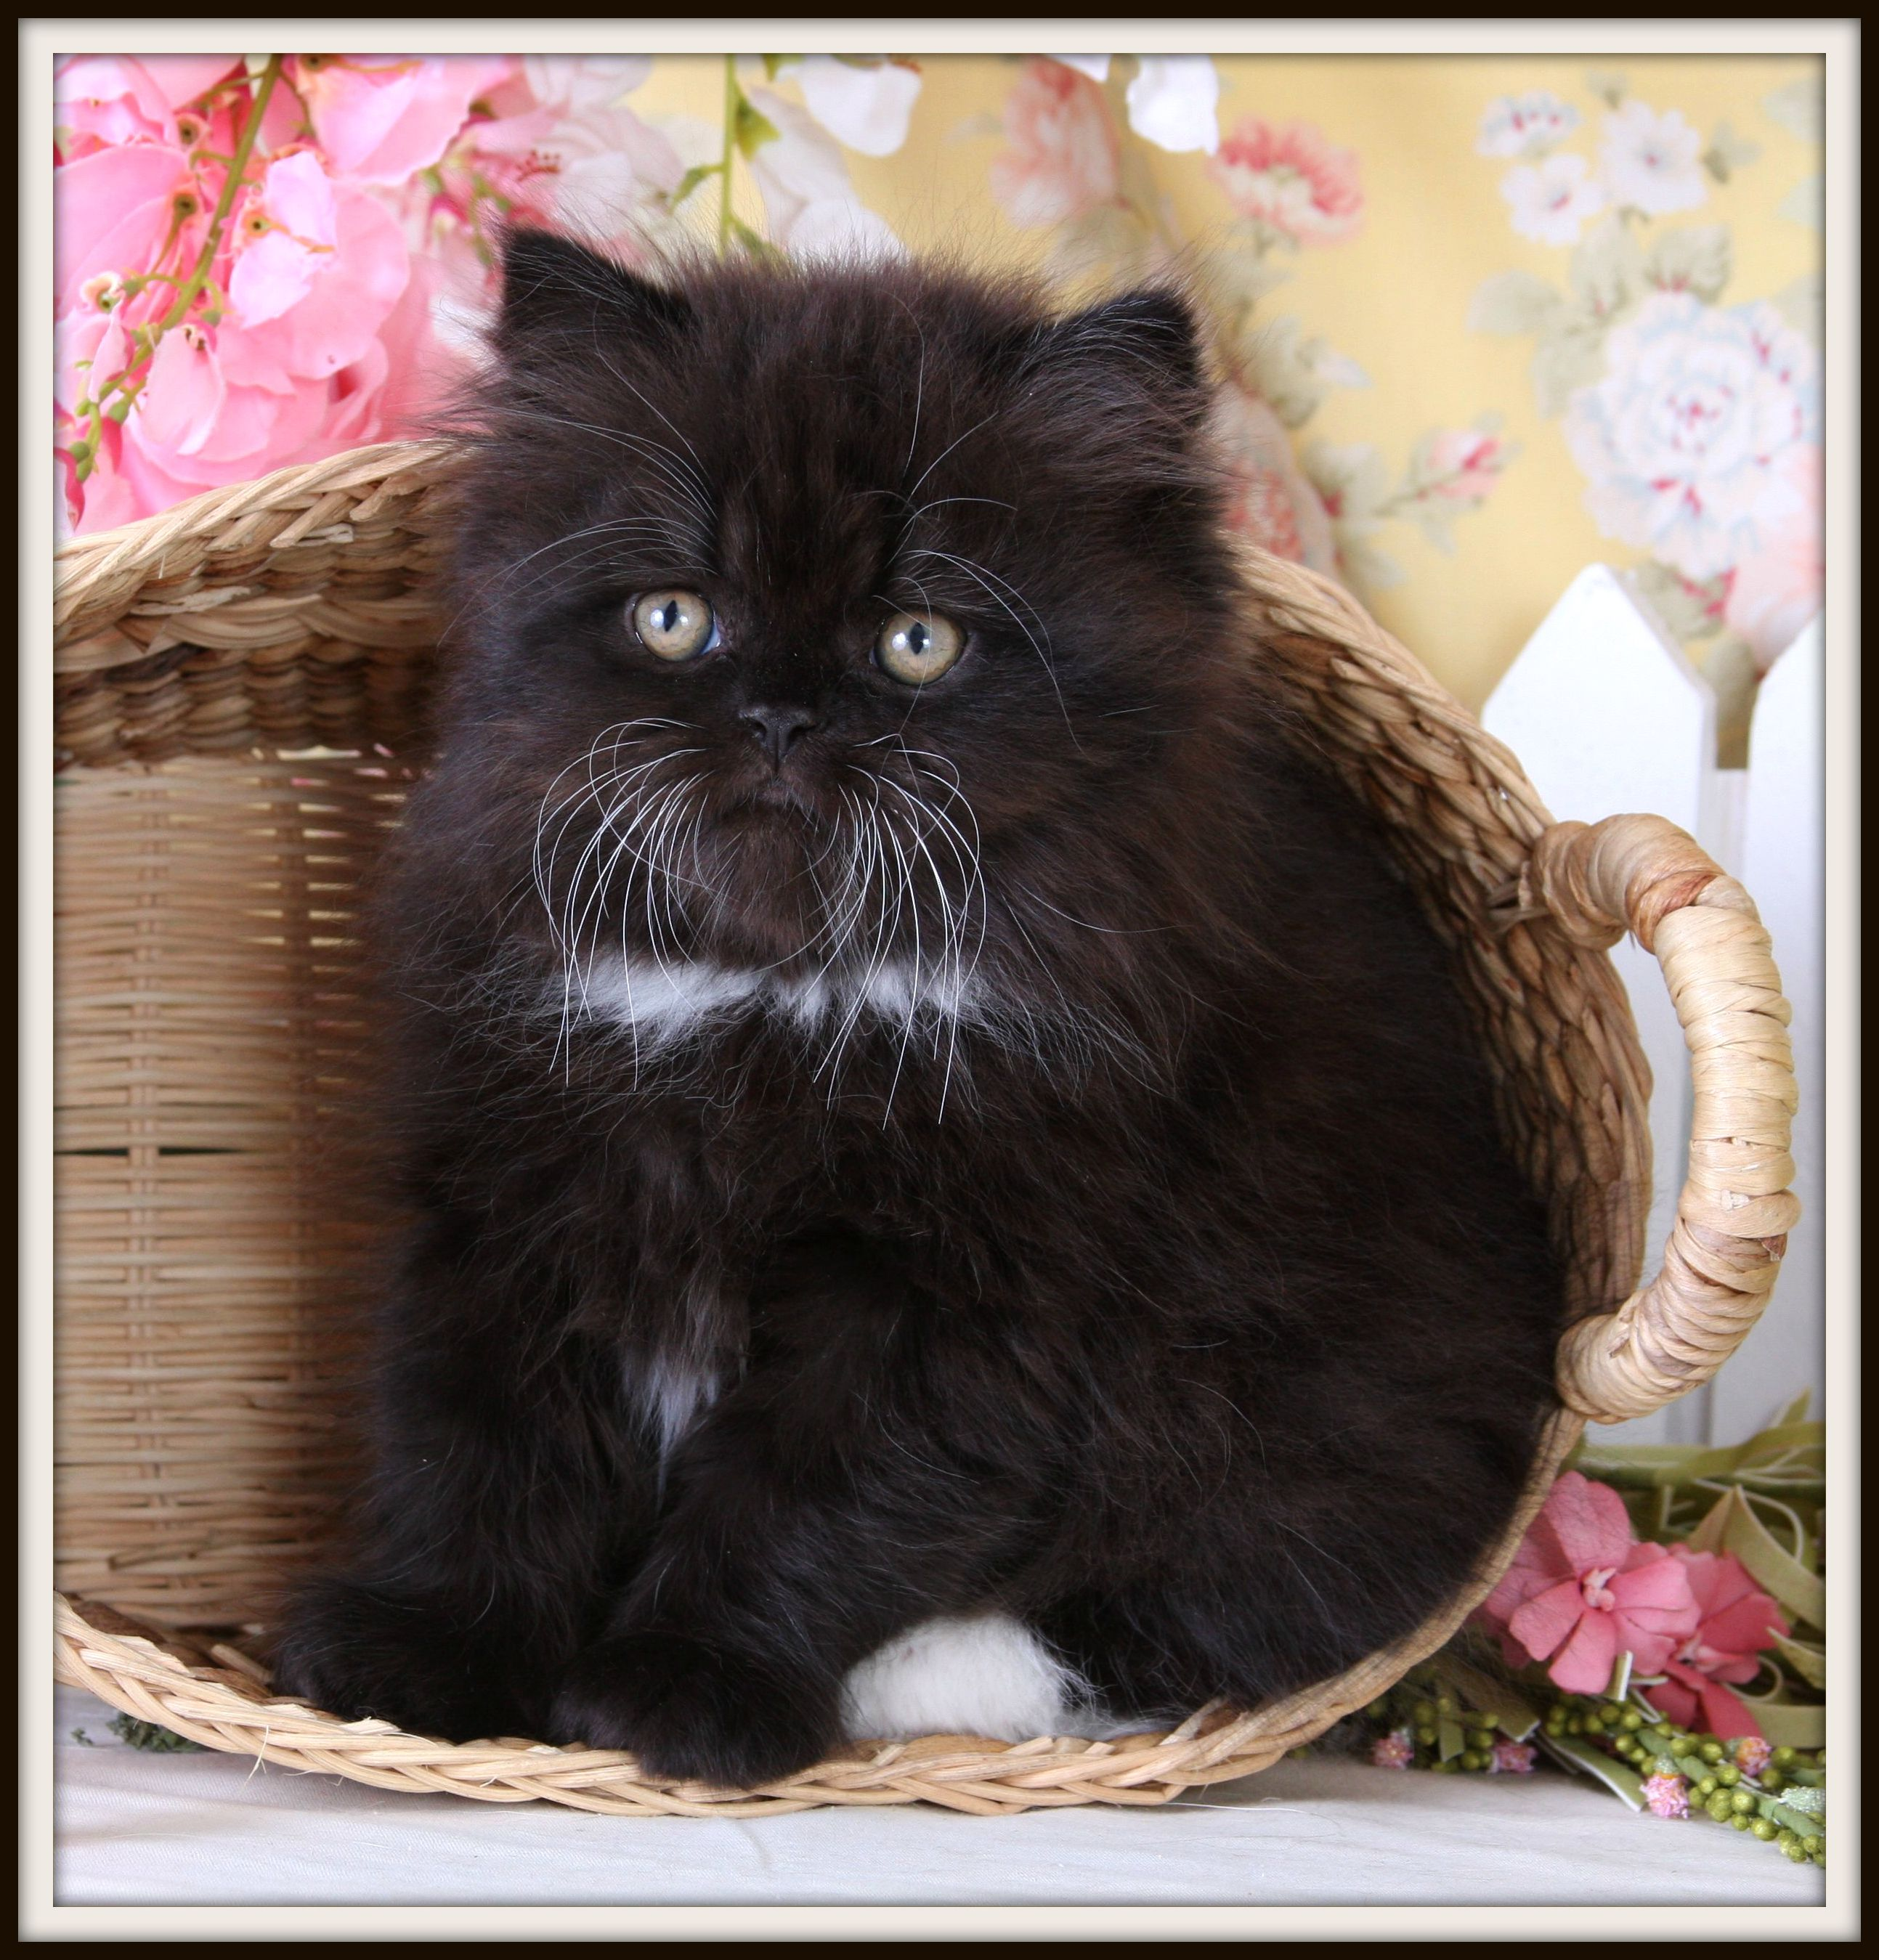 Full Grown Teacup Cats Gallery of Adult Teacup Cat